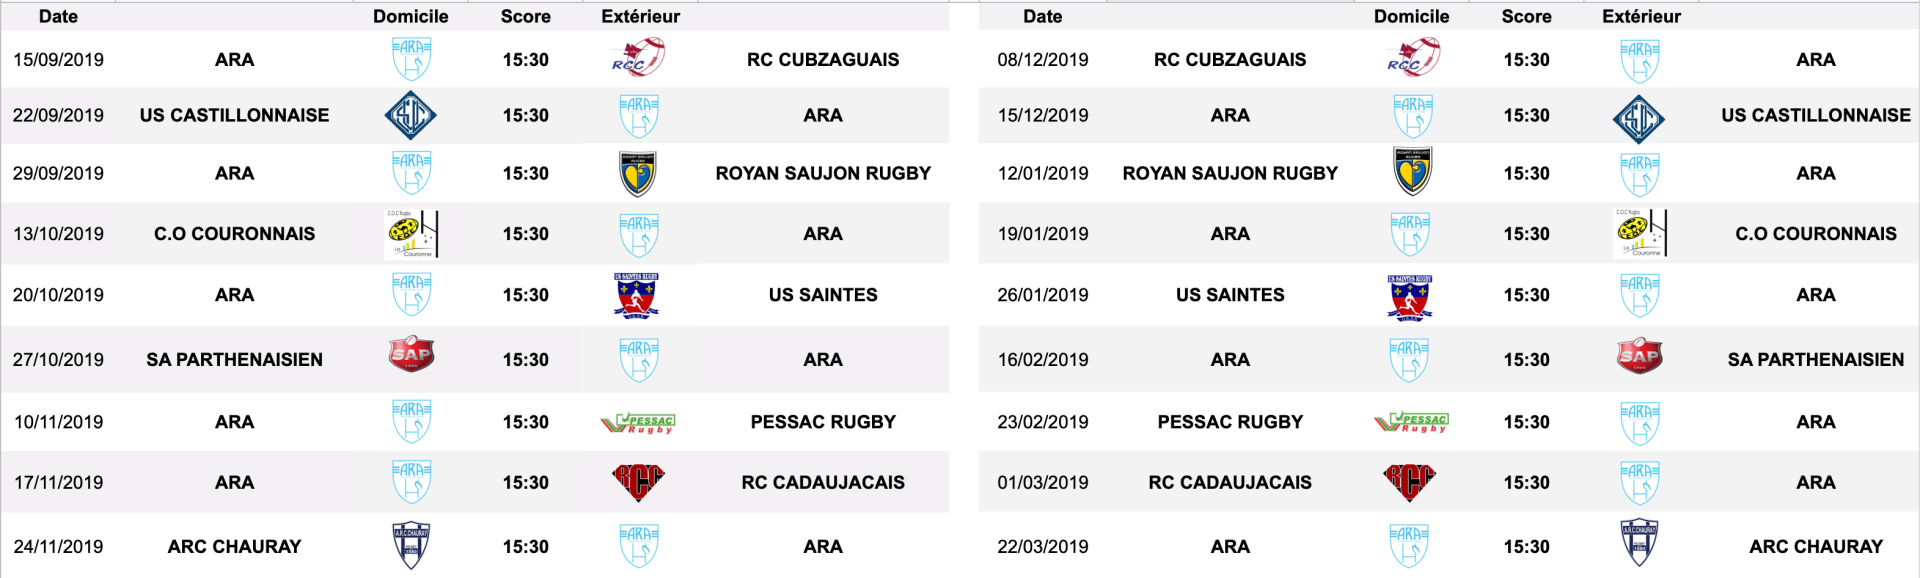 Calendrier Matches Coupe Du Monde 2020.Ara Site Officiel De L Avenir Rugbystique Aytresien